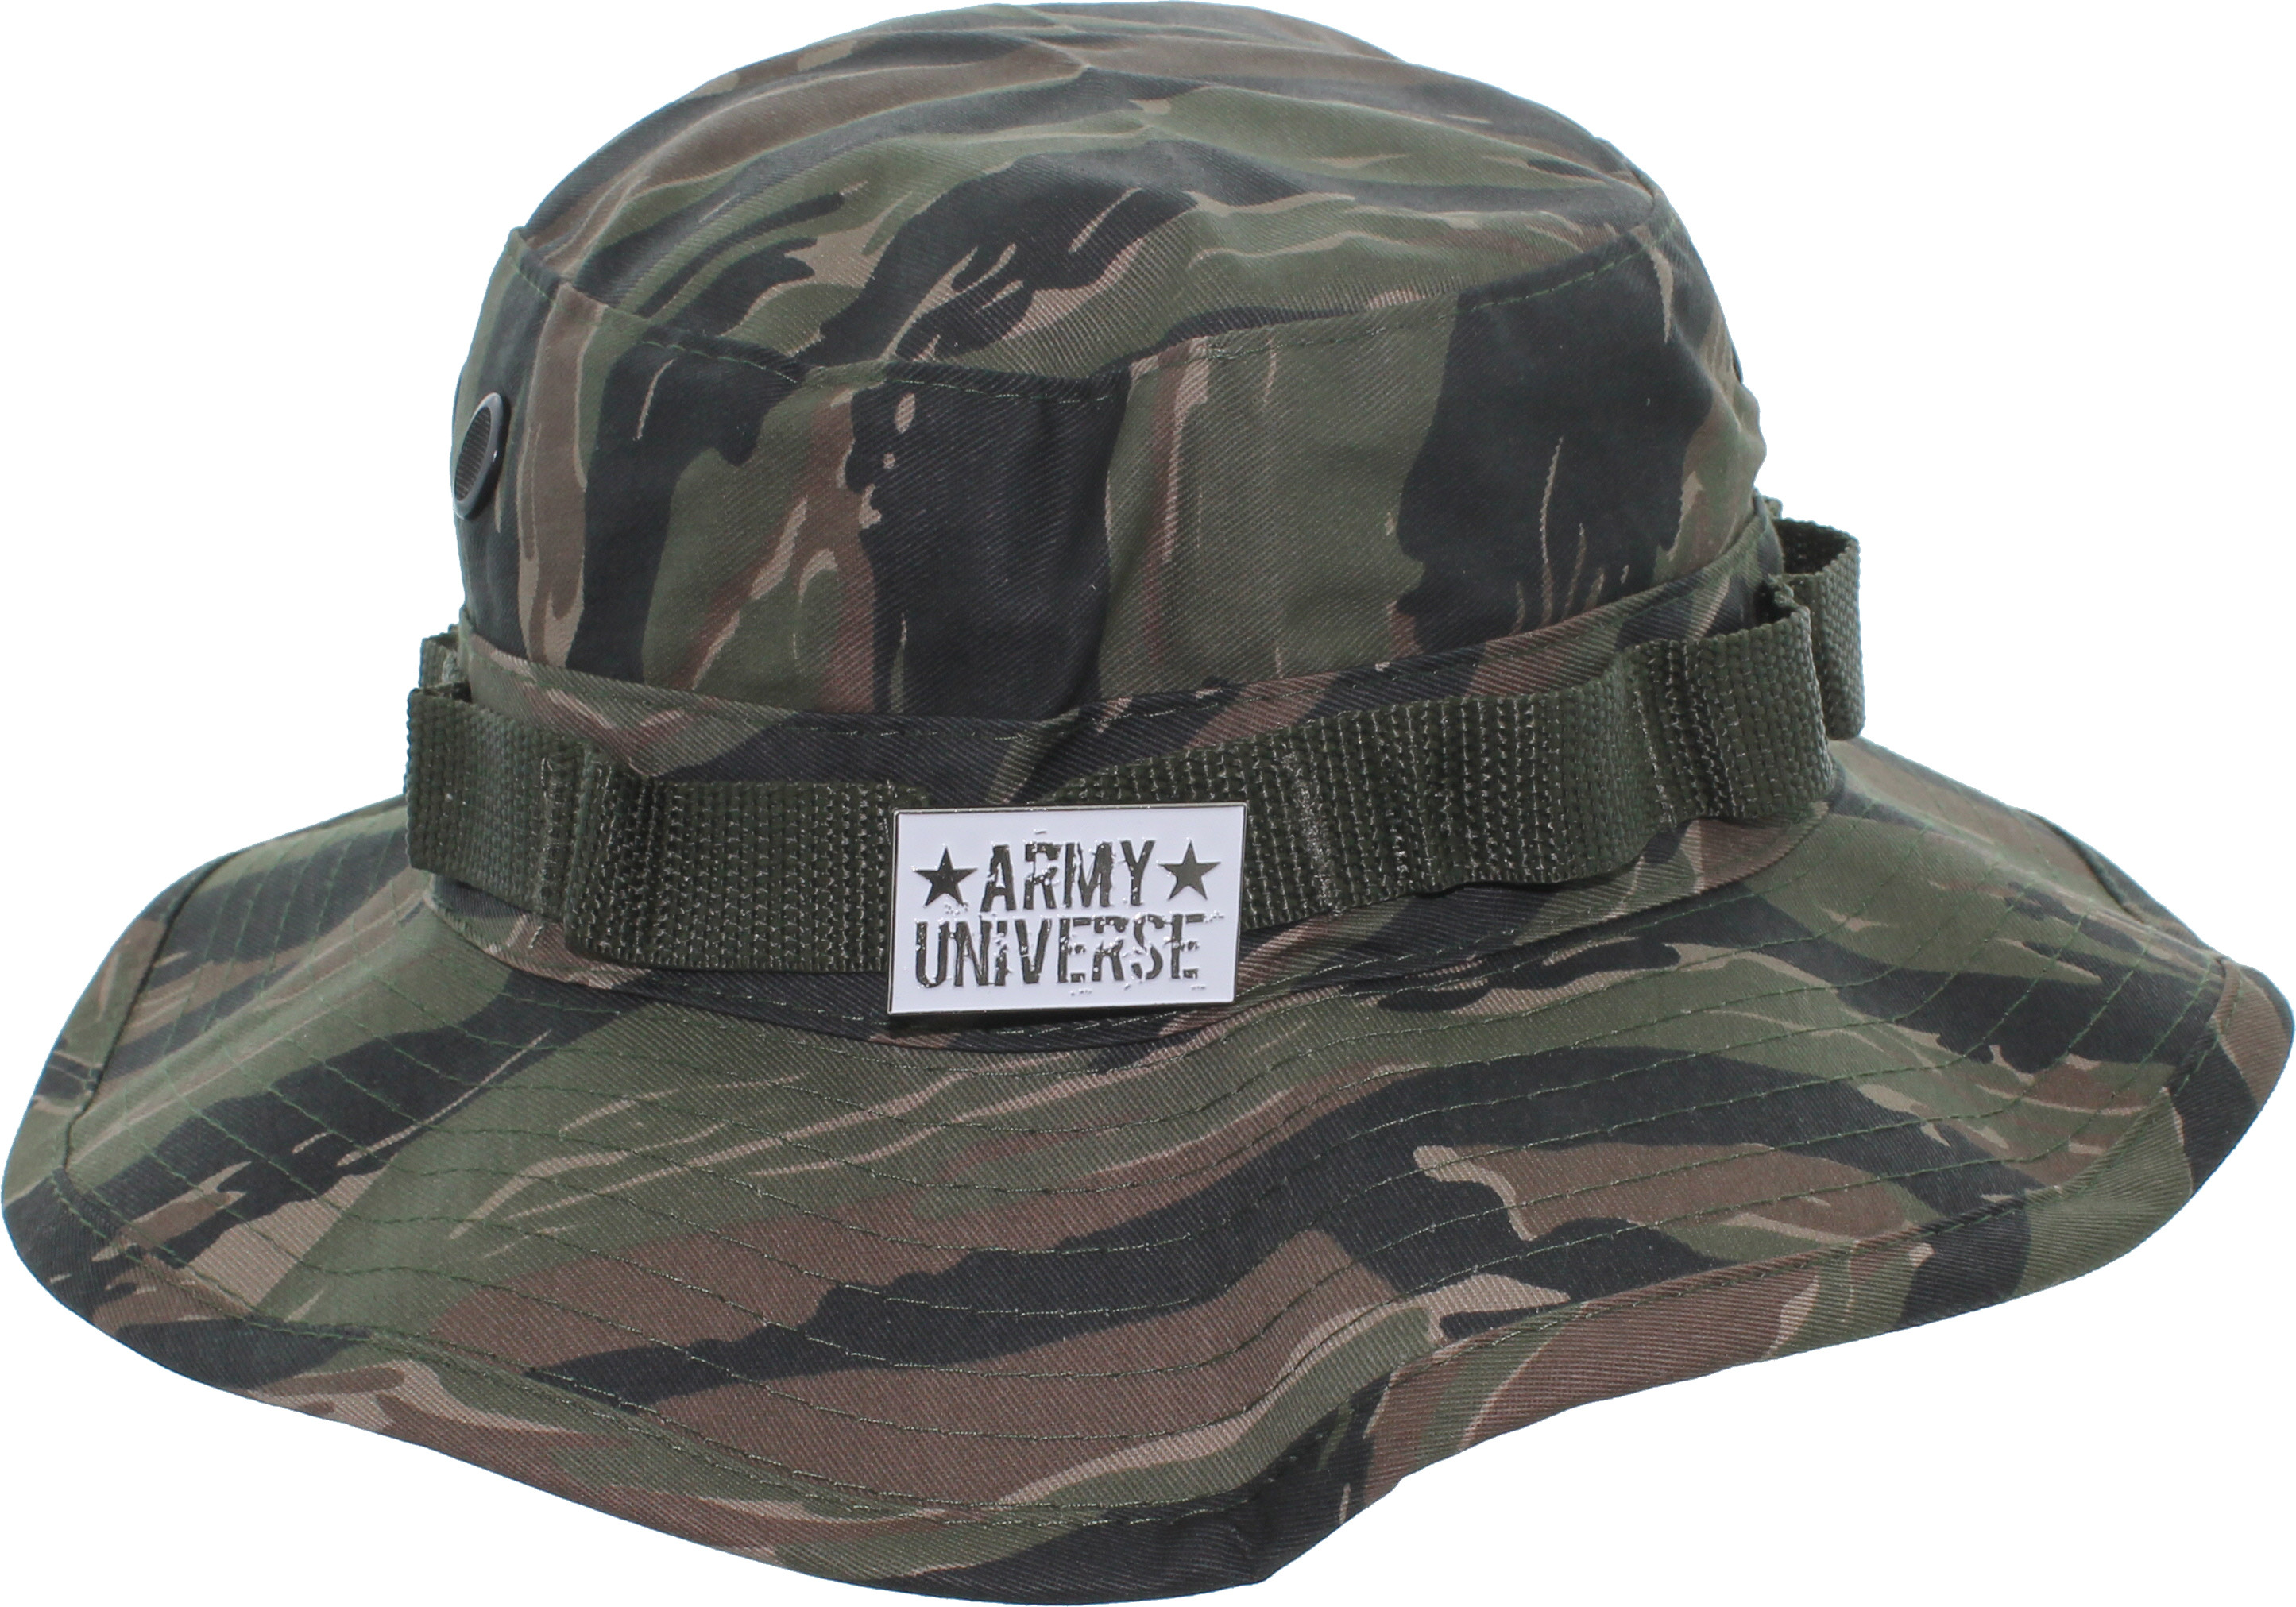 Camouflage Hunting Fishing Wide Brim Boonie Bucket Hat with ARMY ... 058ba6afbcd